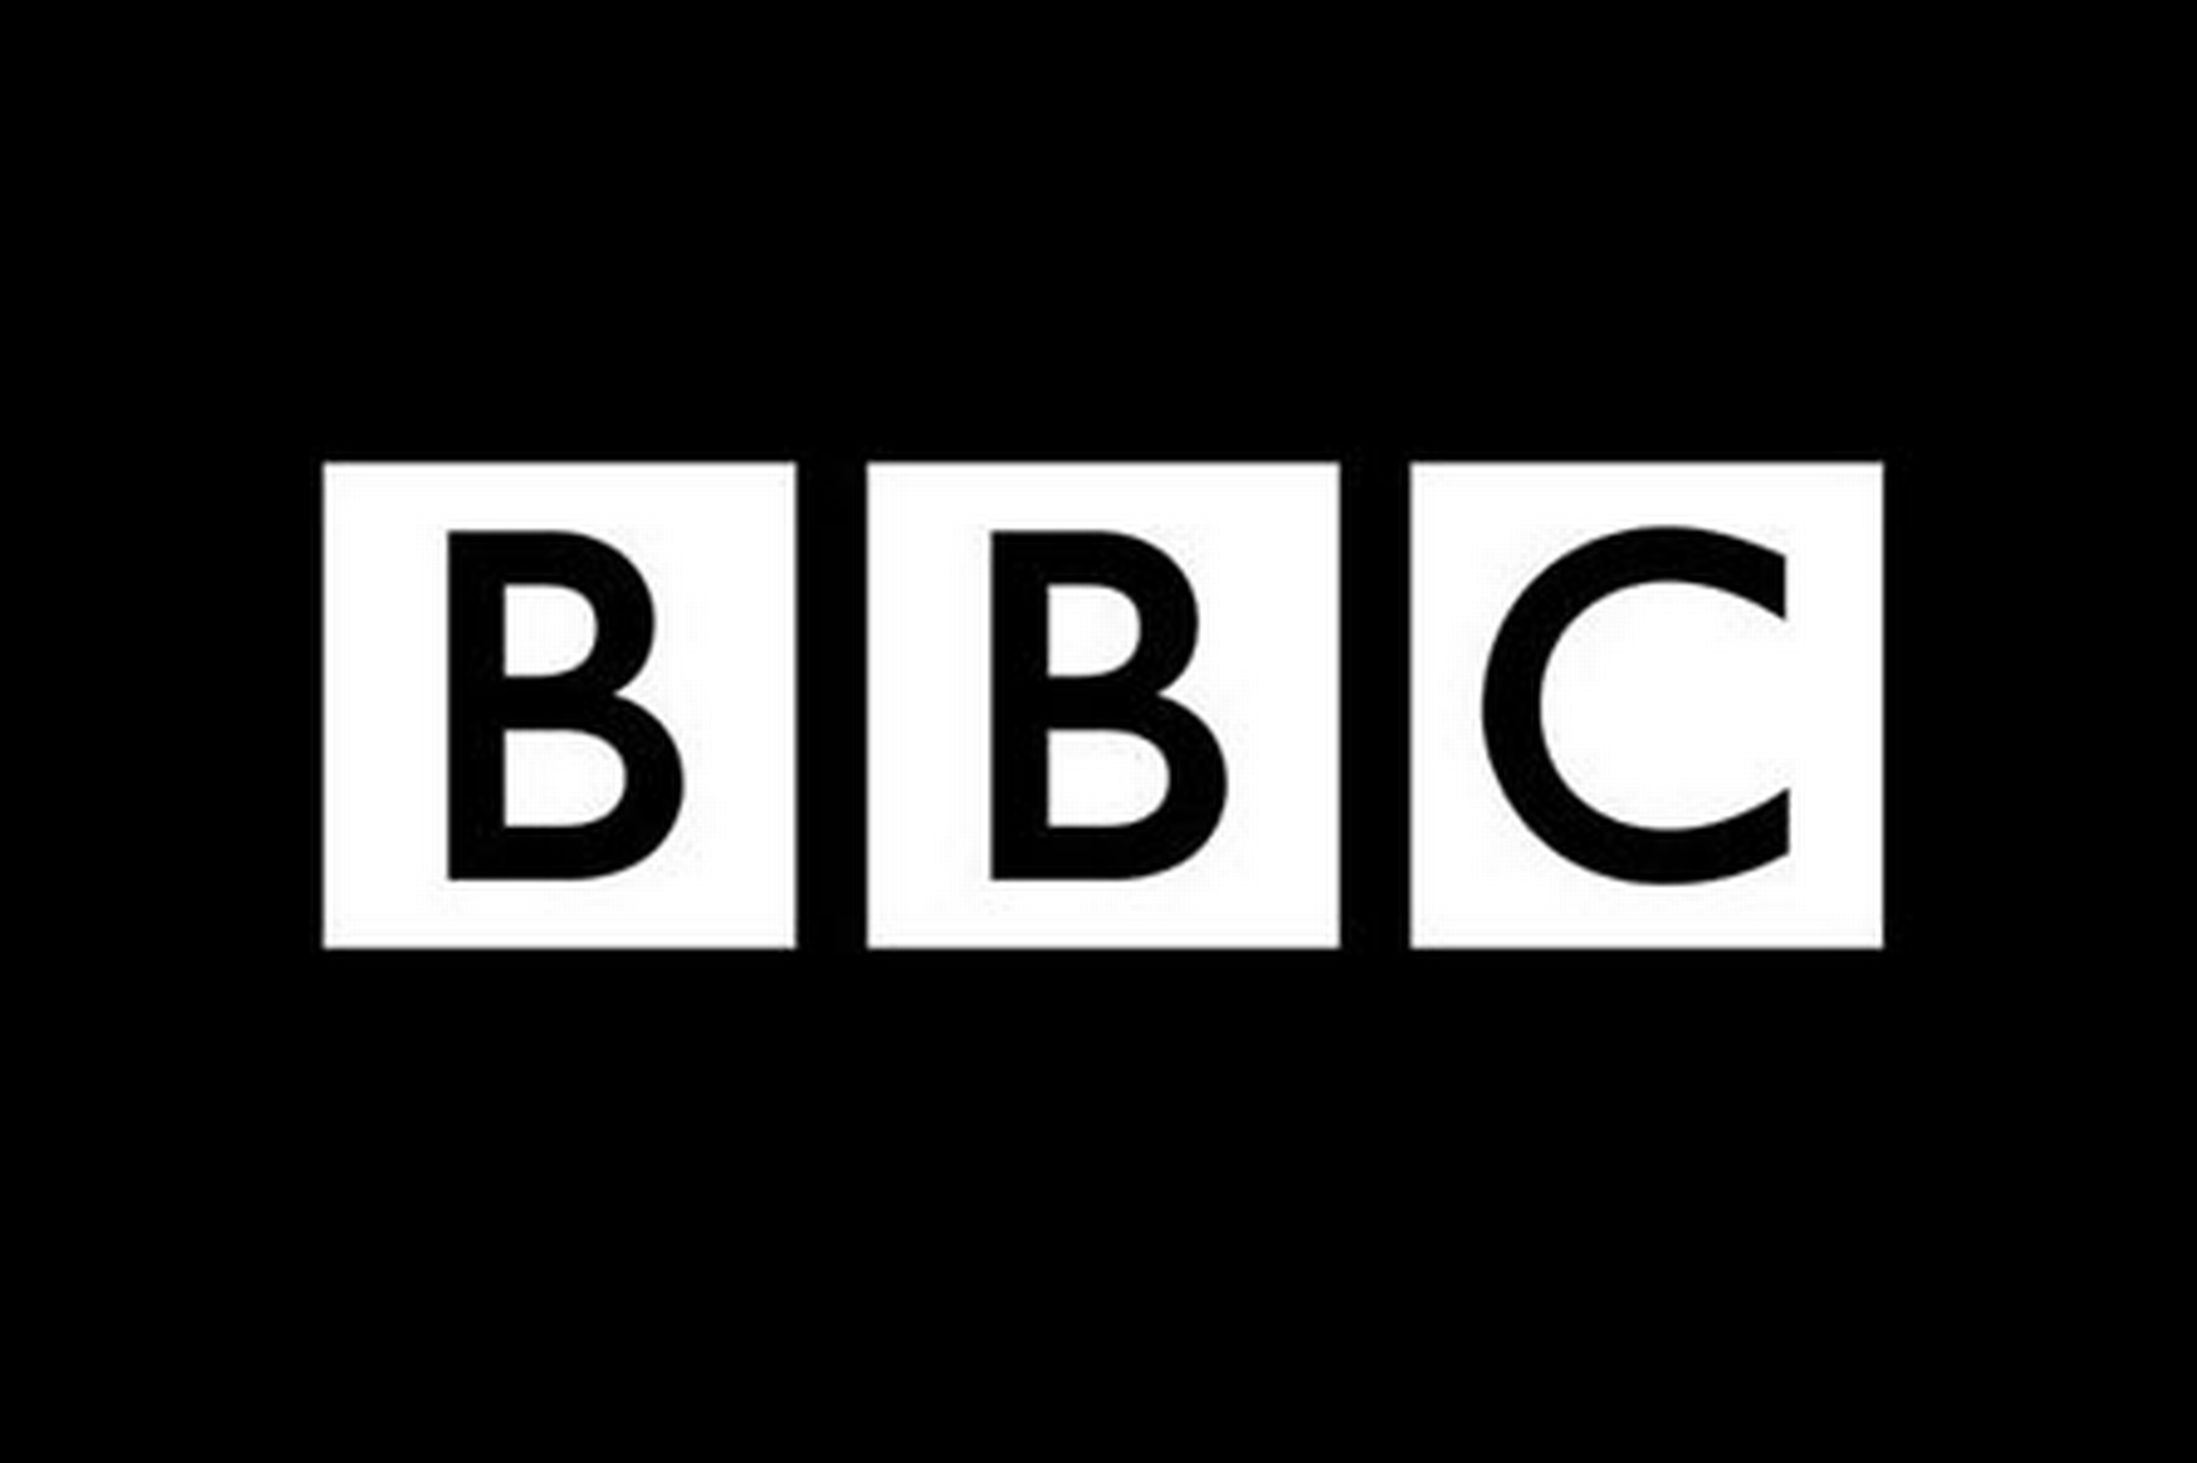 How much should a logo design cost - BBC $1.8 Million Logo